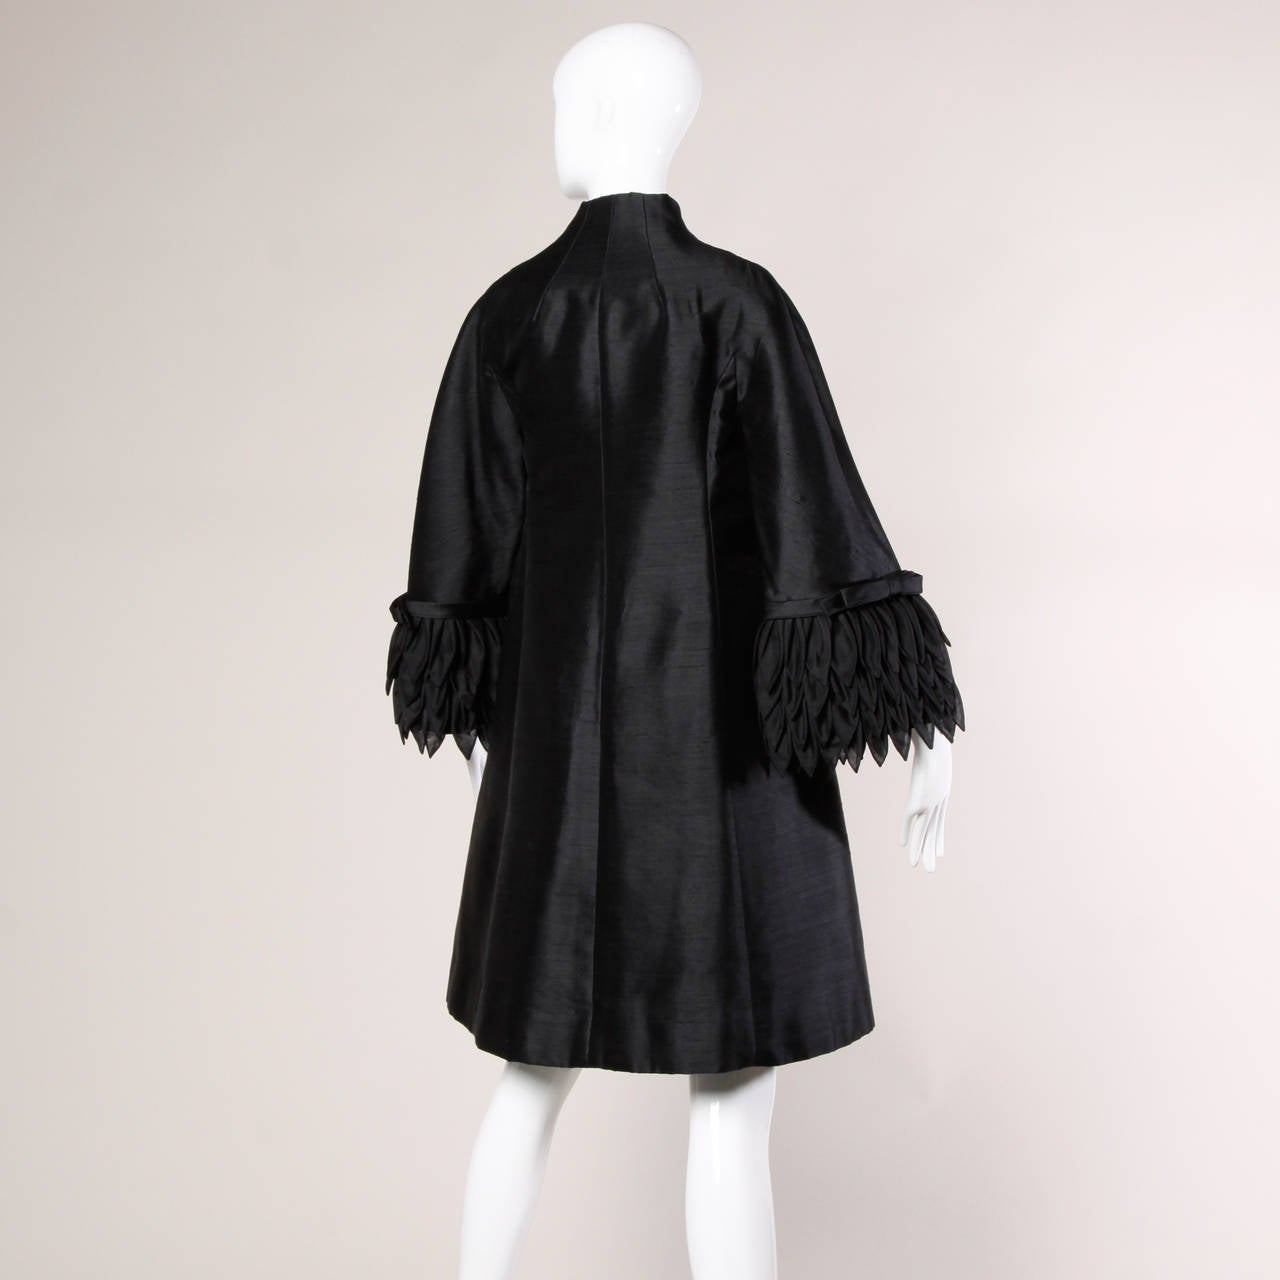 1960s Vinchi Vintage Italian Couture Sculptural Silk Petal Swing Coat In Excellent Condition For Sale In Sparks, NV